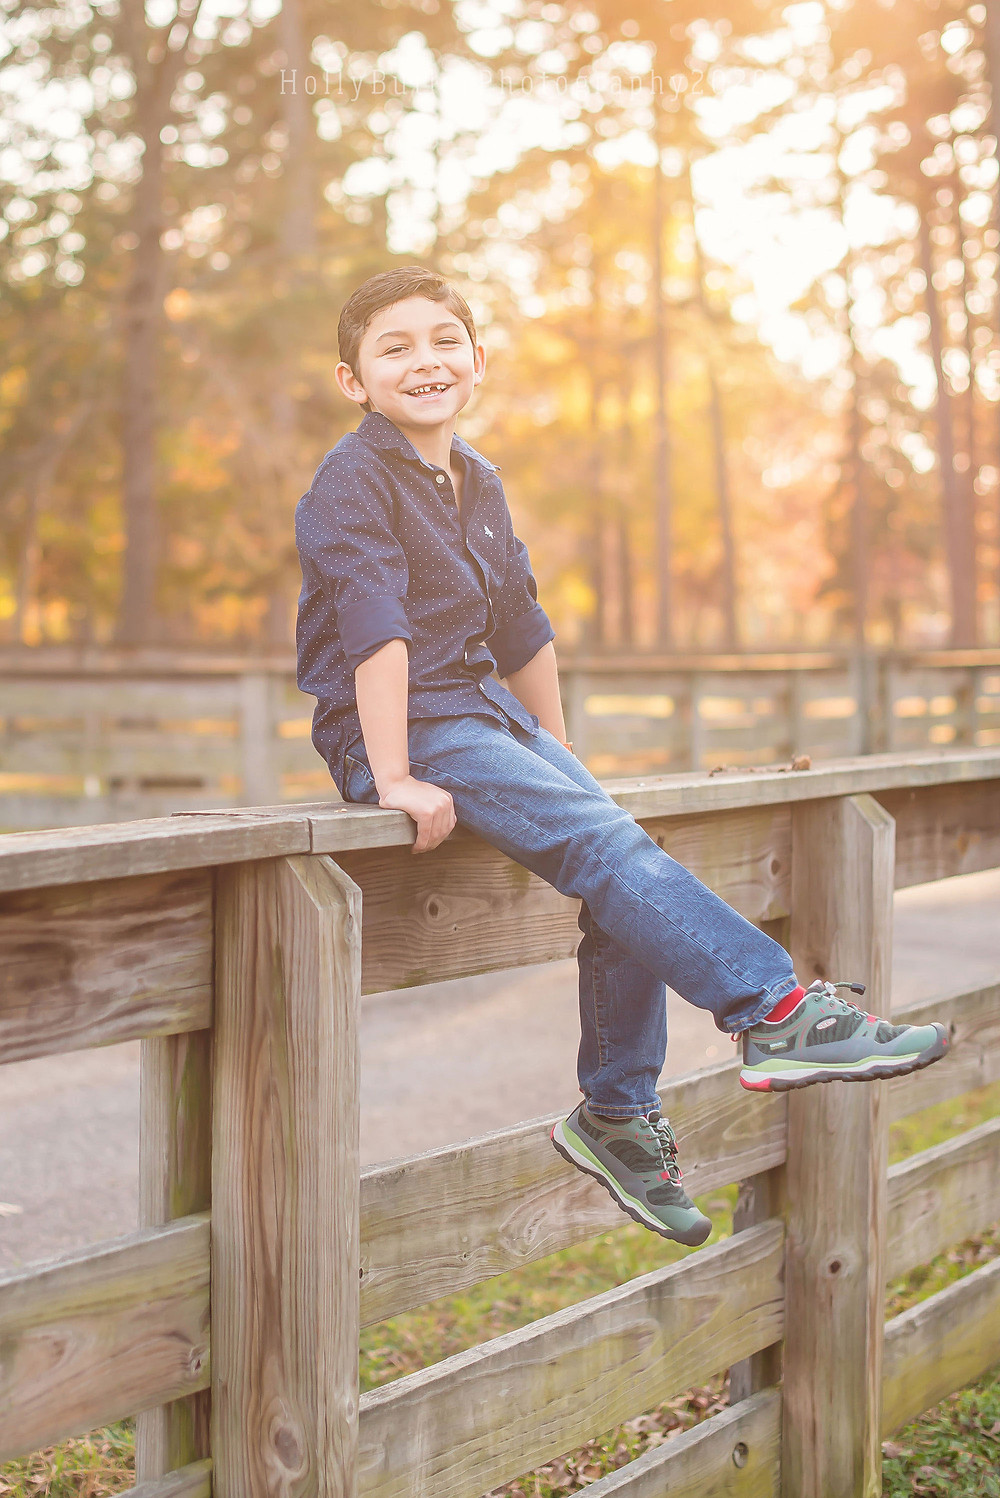 Fall Sessions | Family Sessions | Holly Butler Photography